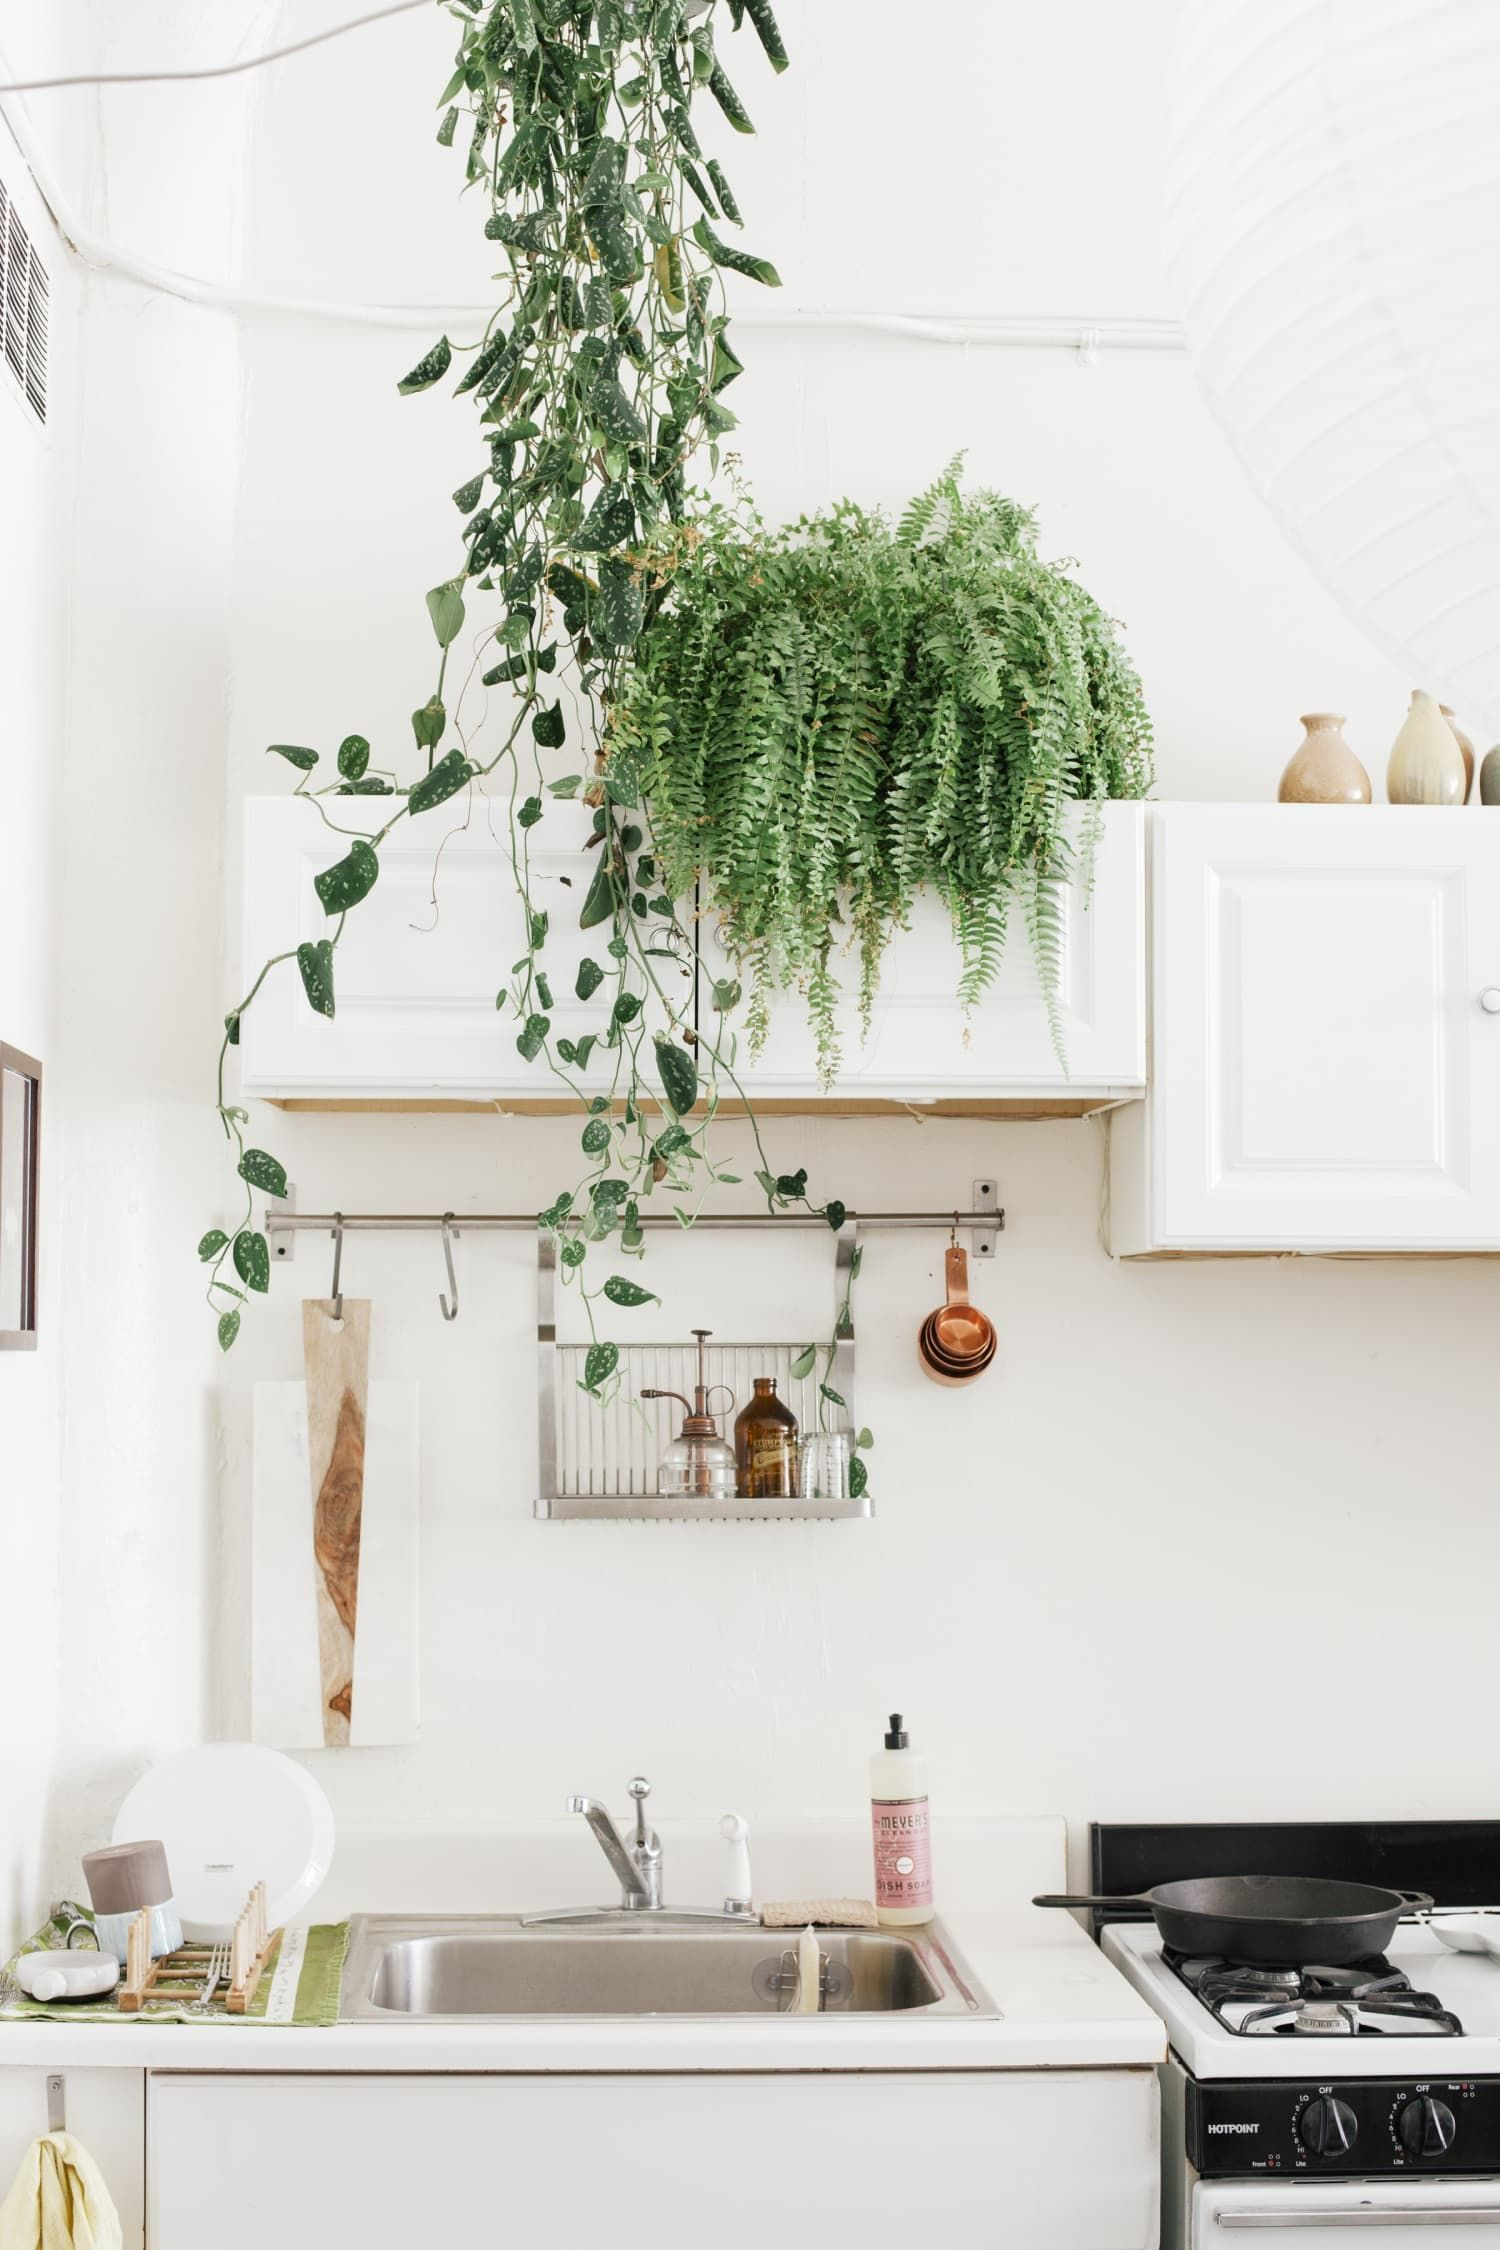 10 Ways To Reset Your Kitchen For The New Year Kitchen Reset Ways Year In 2020 Small Kitchen Solutions Kitchen Plants Kitchen Design Small